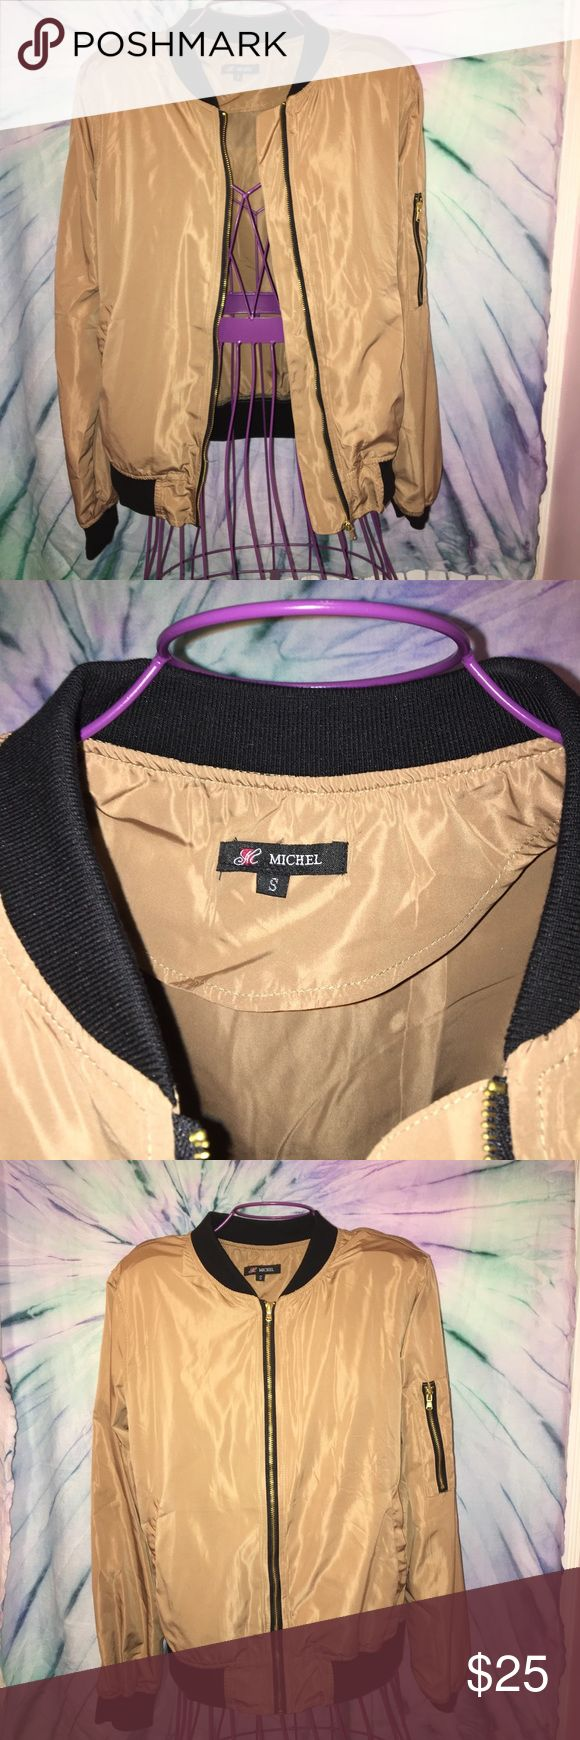 Tan bomber jacket Tan bomber jacket in size small. With pockets on waist and on left shoulder. Black trimming with gold detail zipper. WORN ONCE. IN GREAT SHAPE. Jackets & Coats